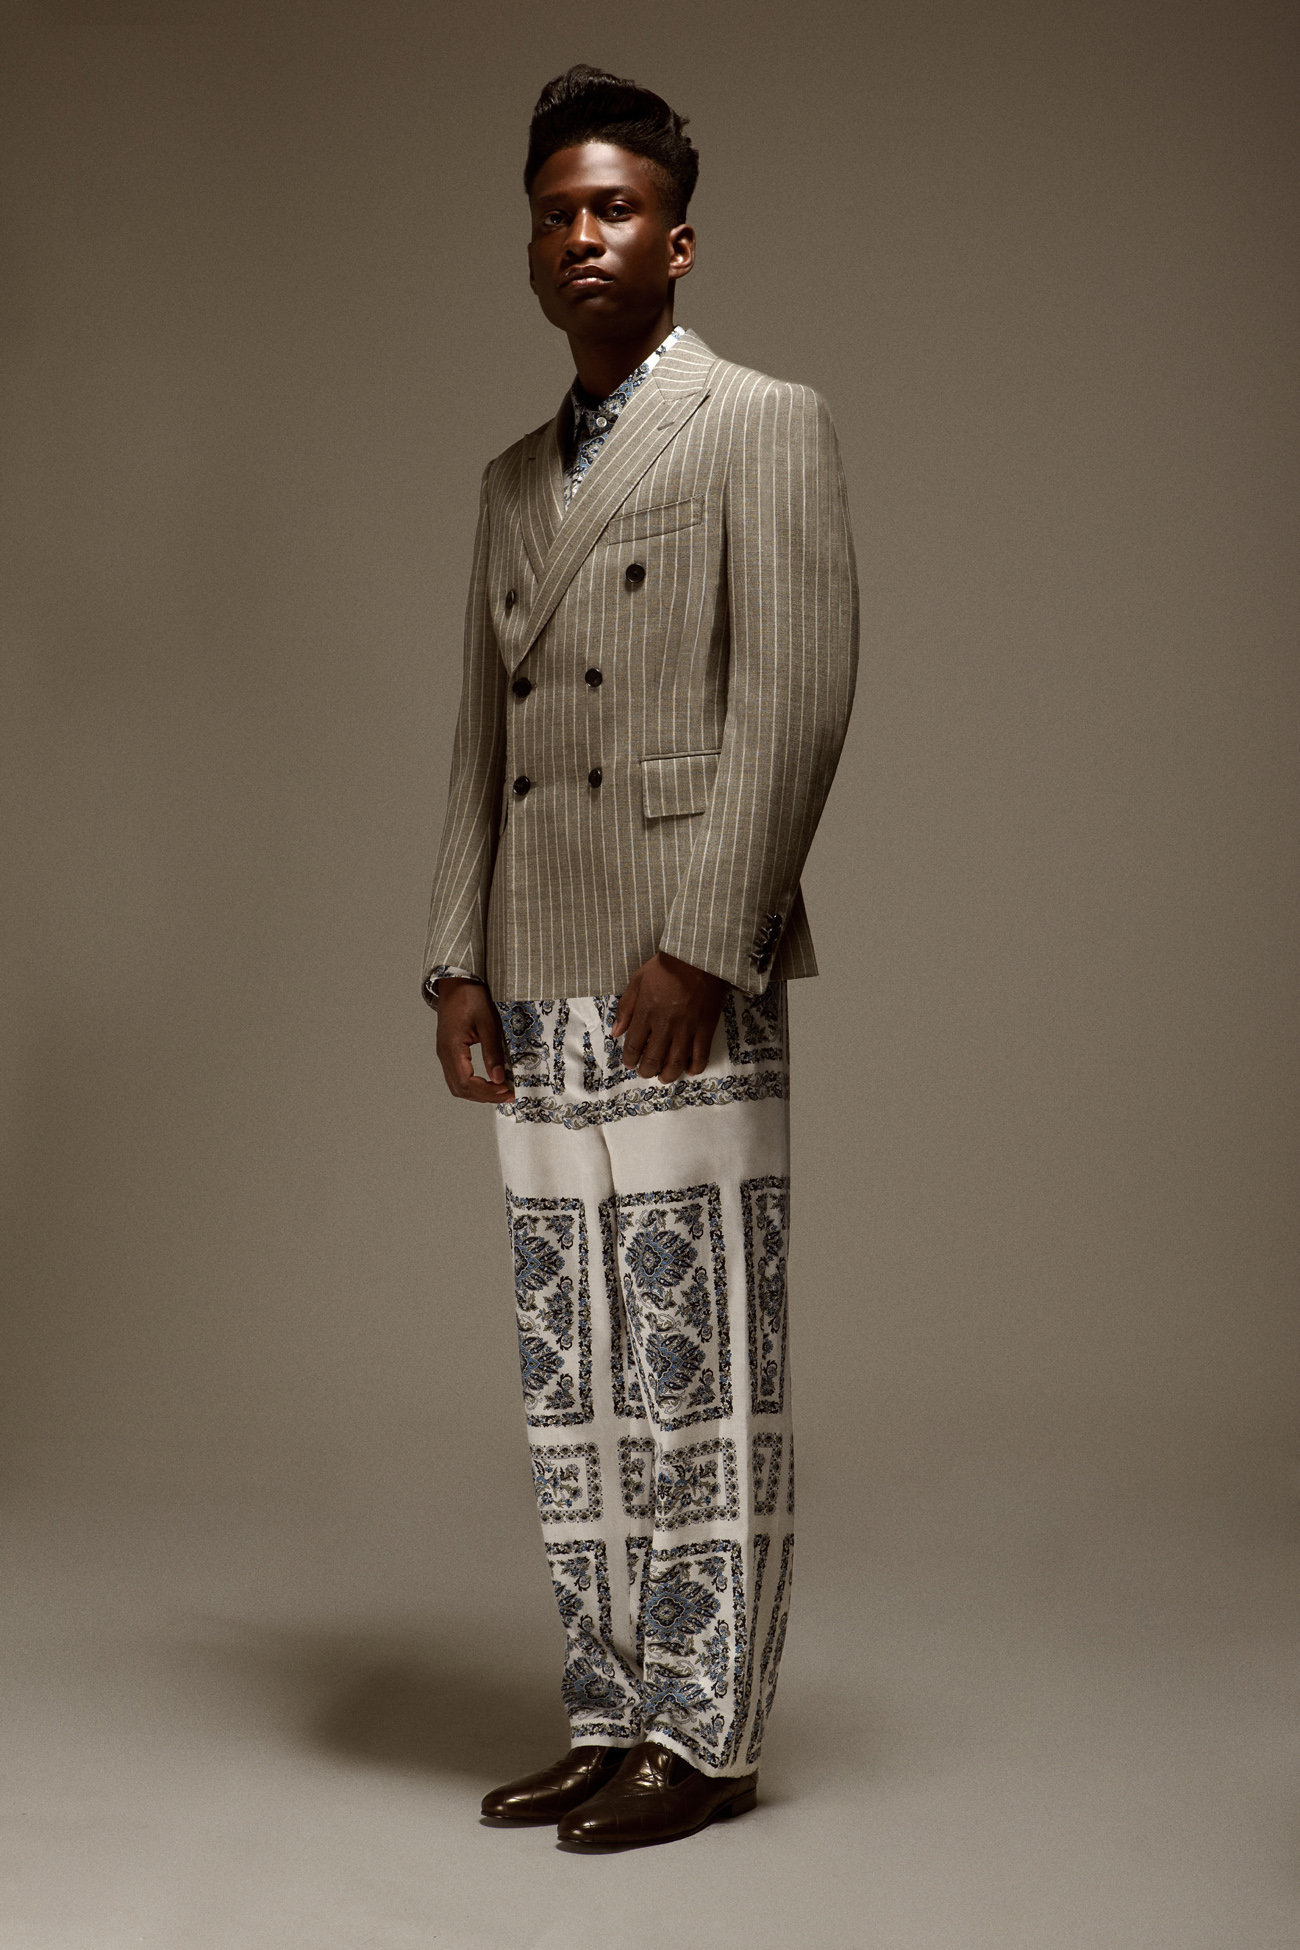 Casely-Hayford SS10 — Look 5.